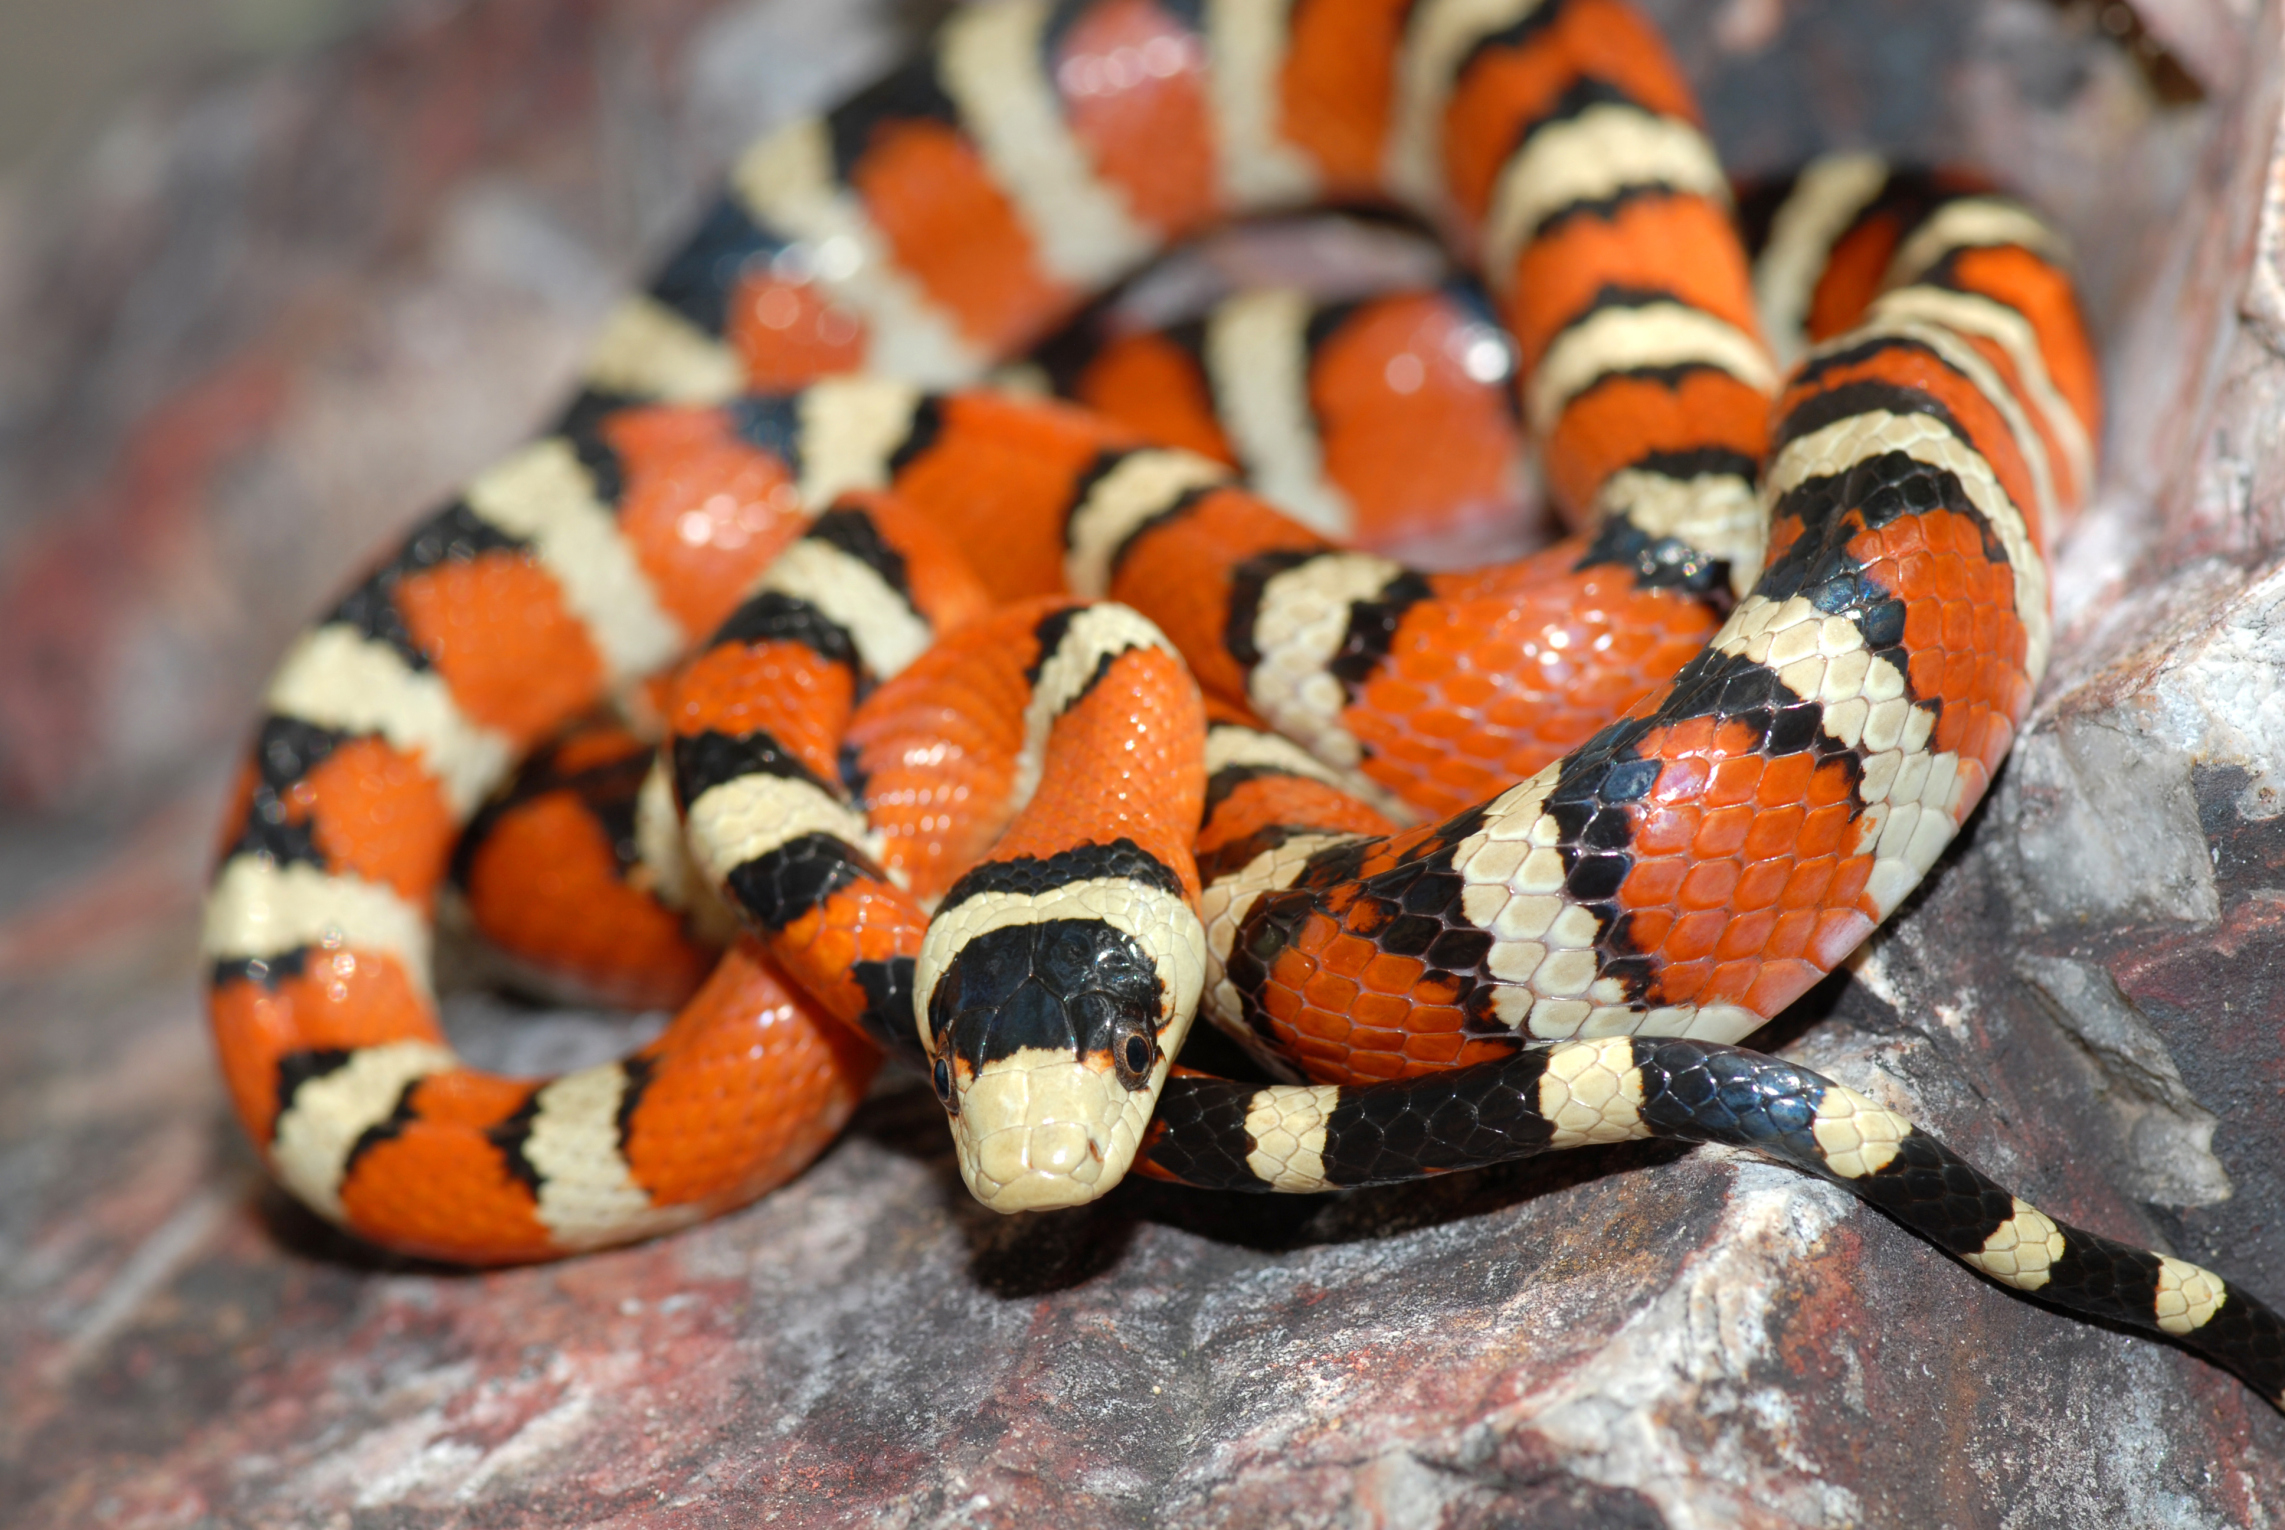 How To Identify Red Black Striped Snakes